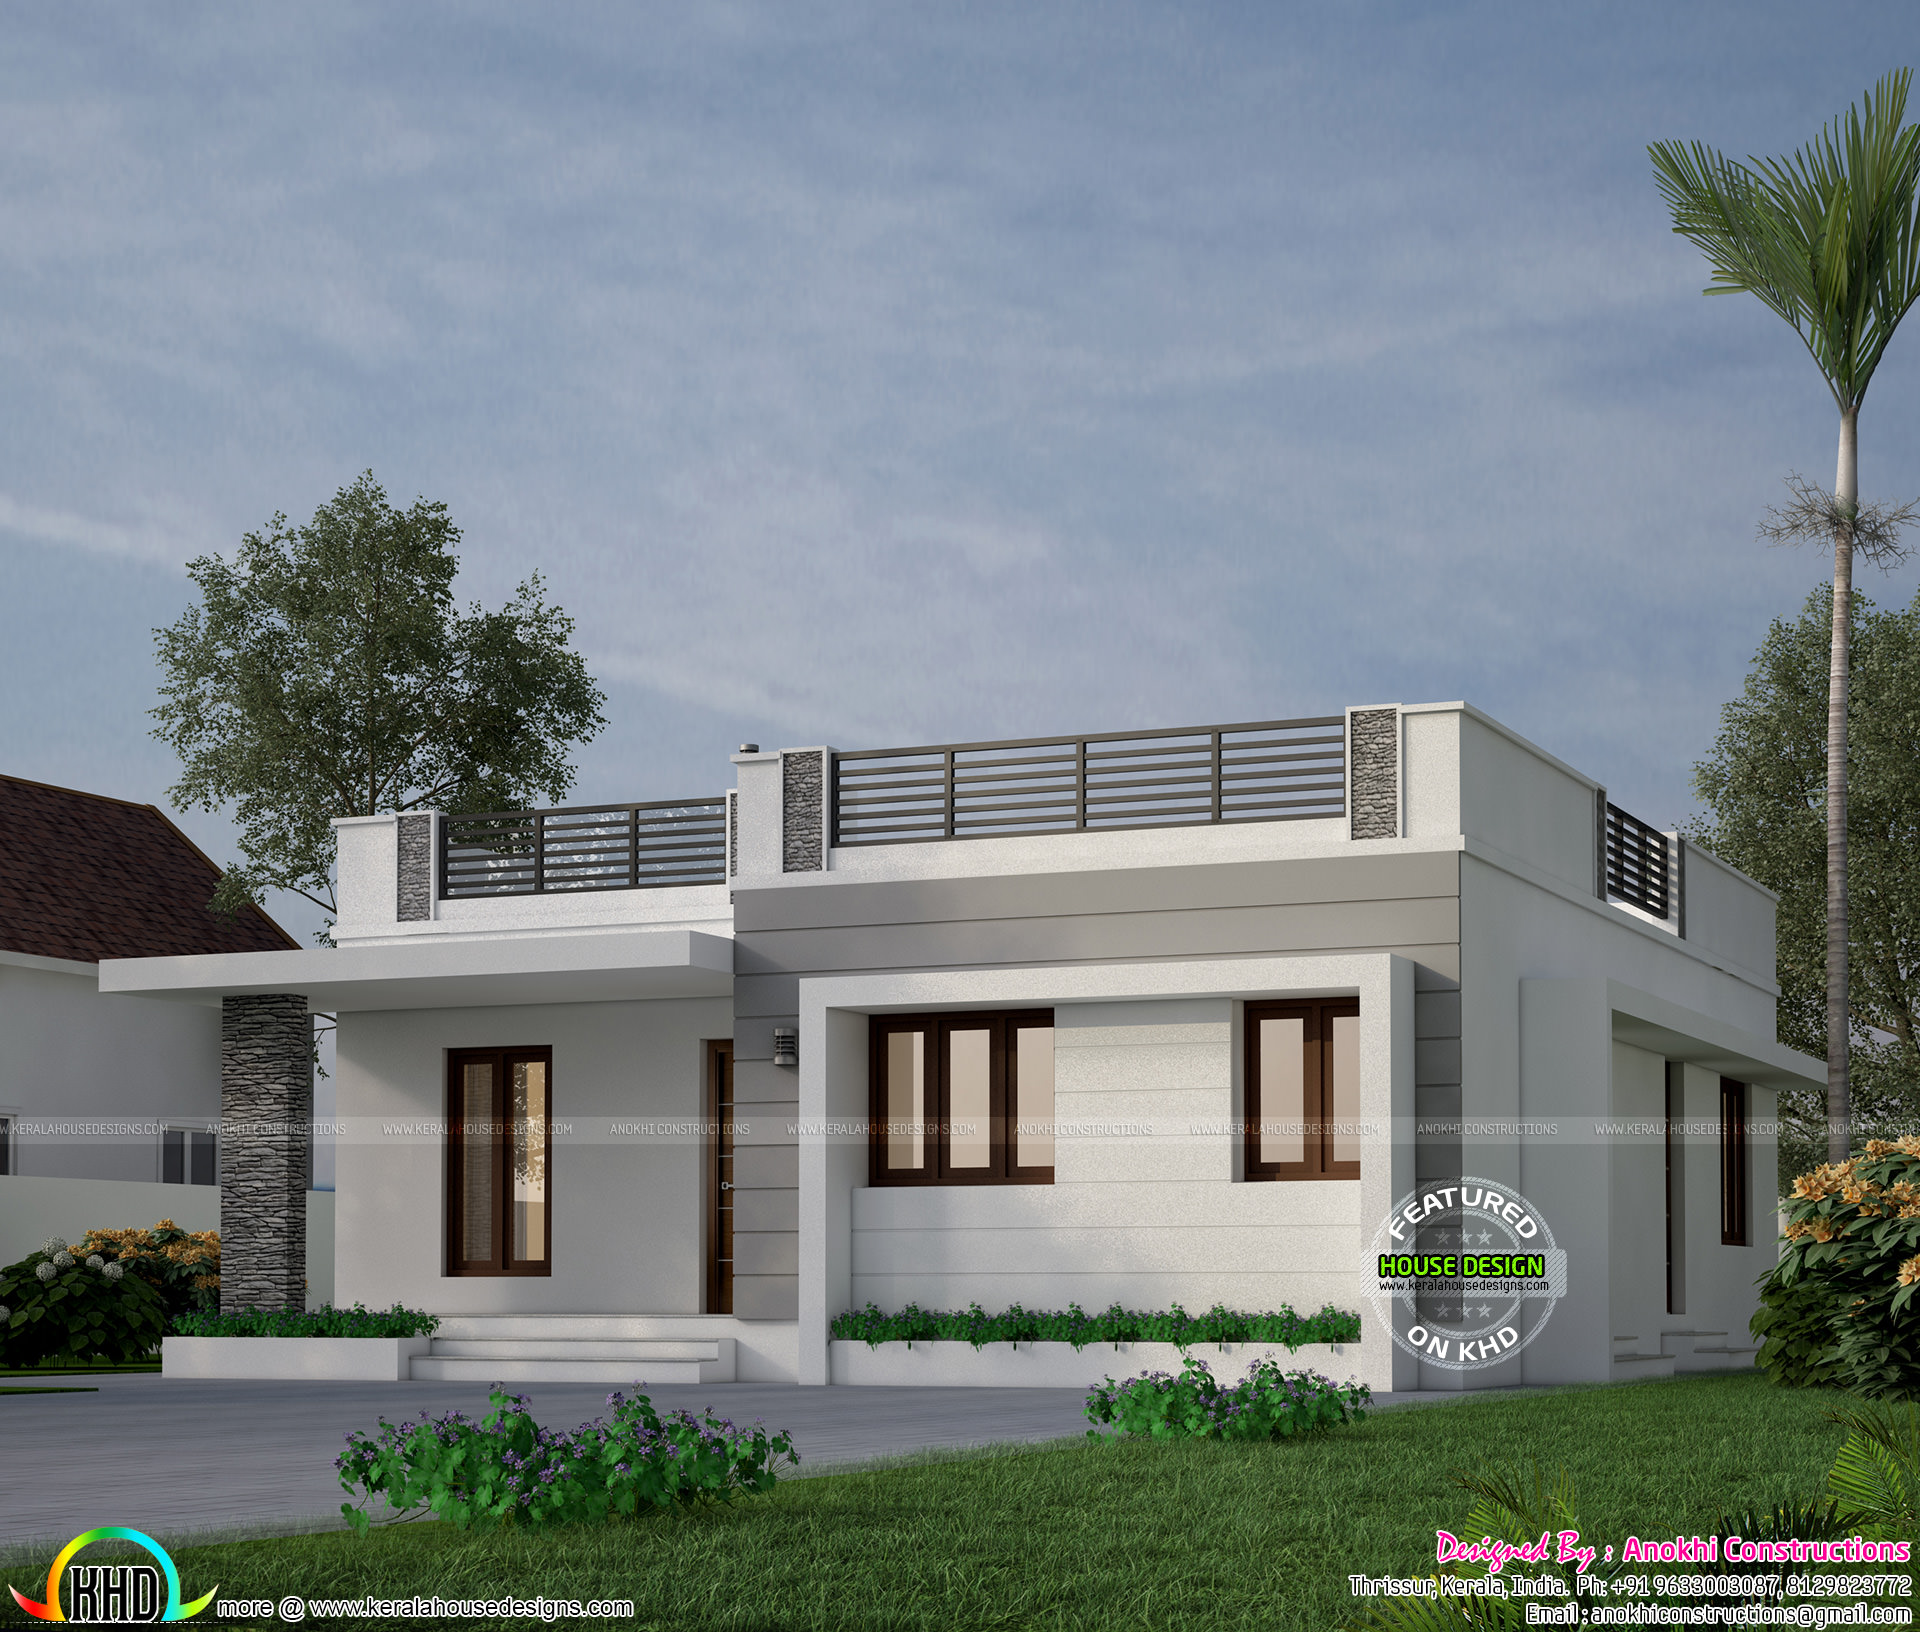 18 lakhs budget estimated house in kerala kerala home for House plans in kerala with estimate